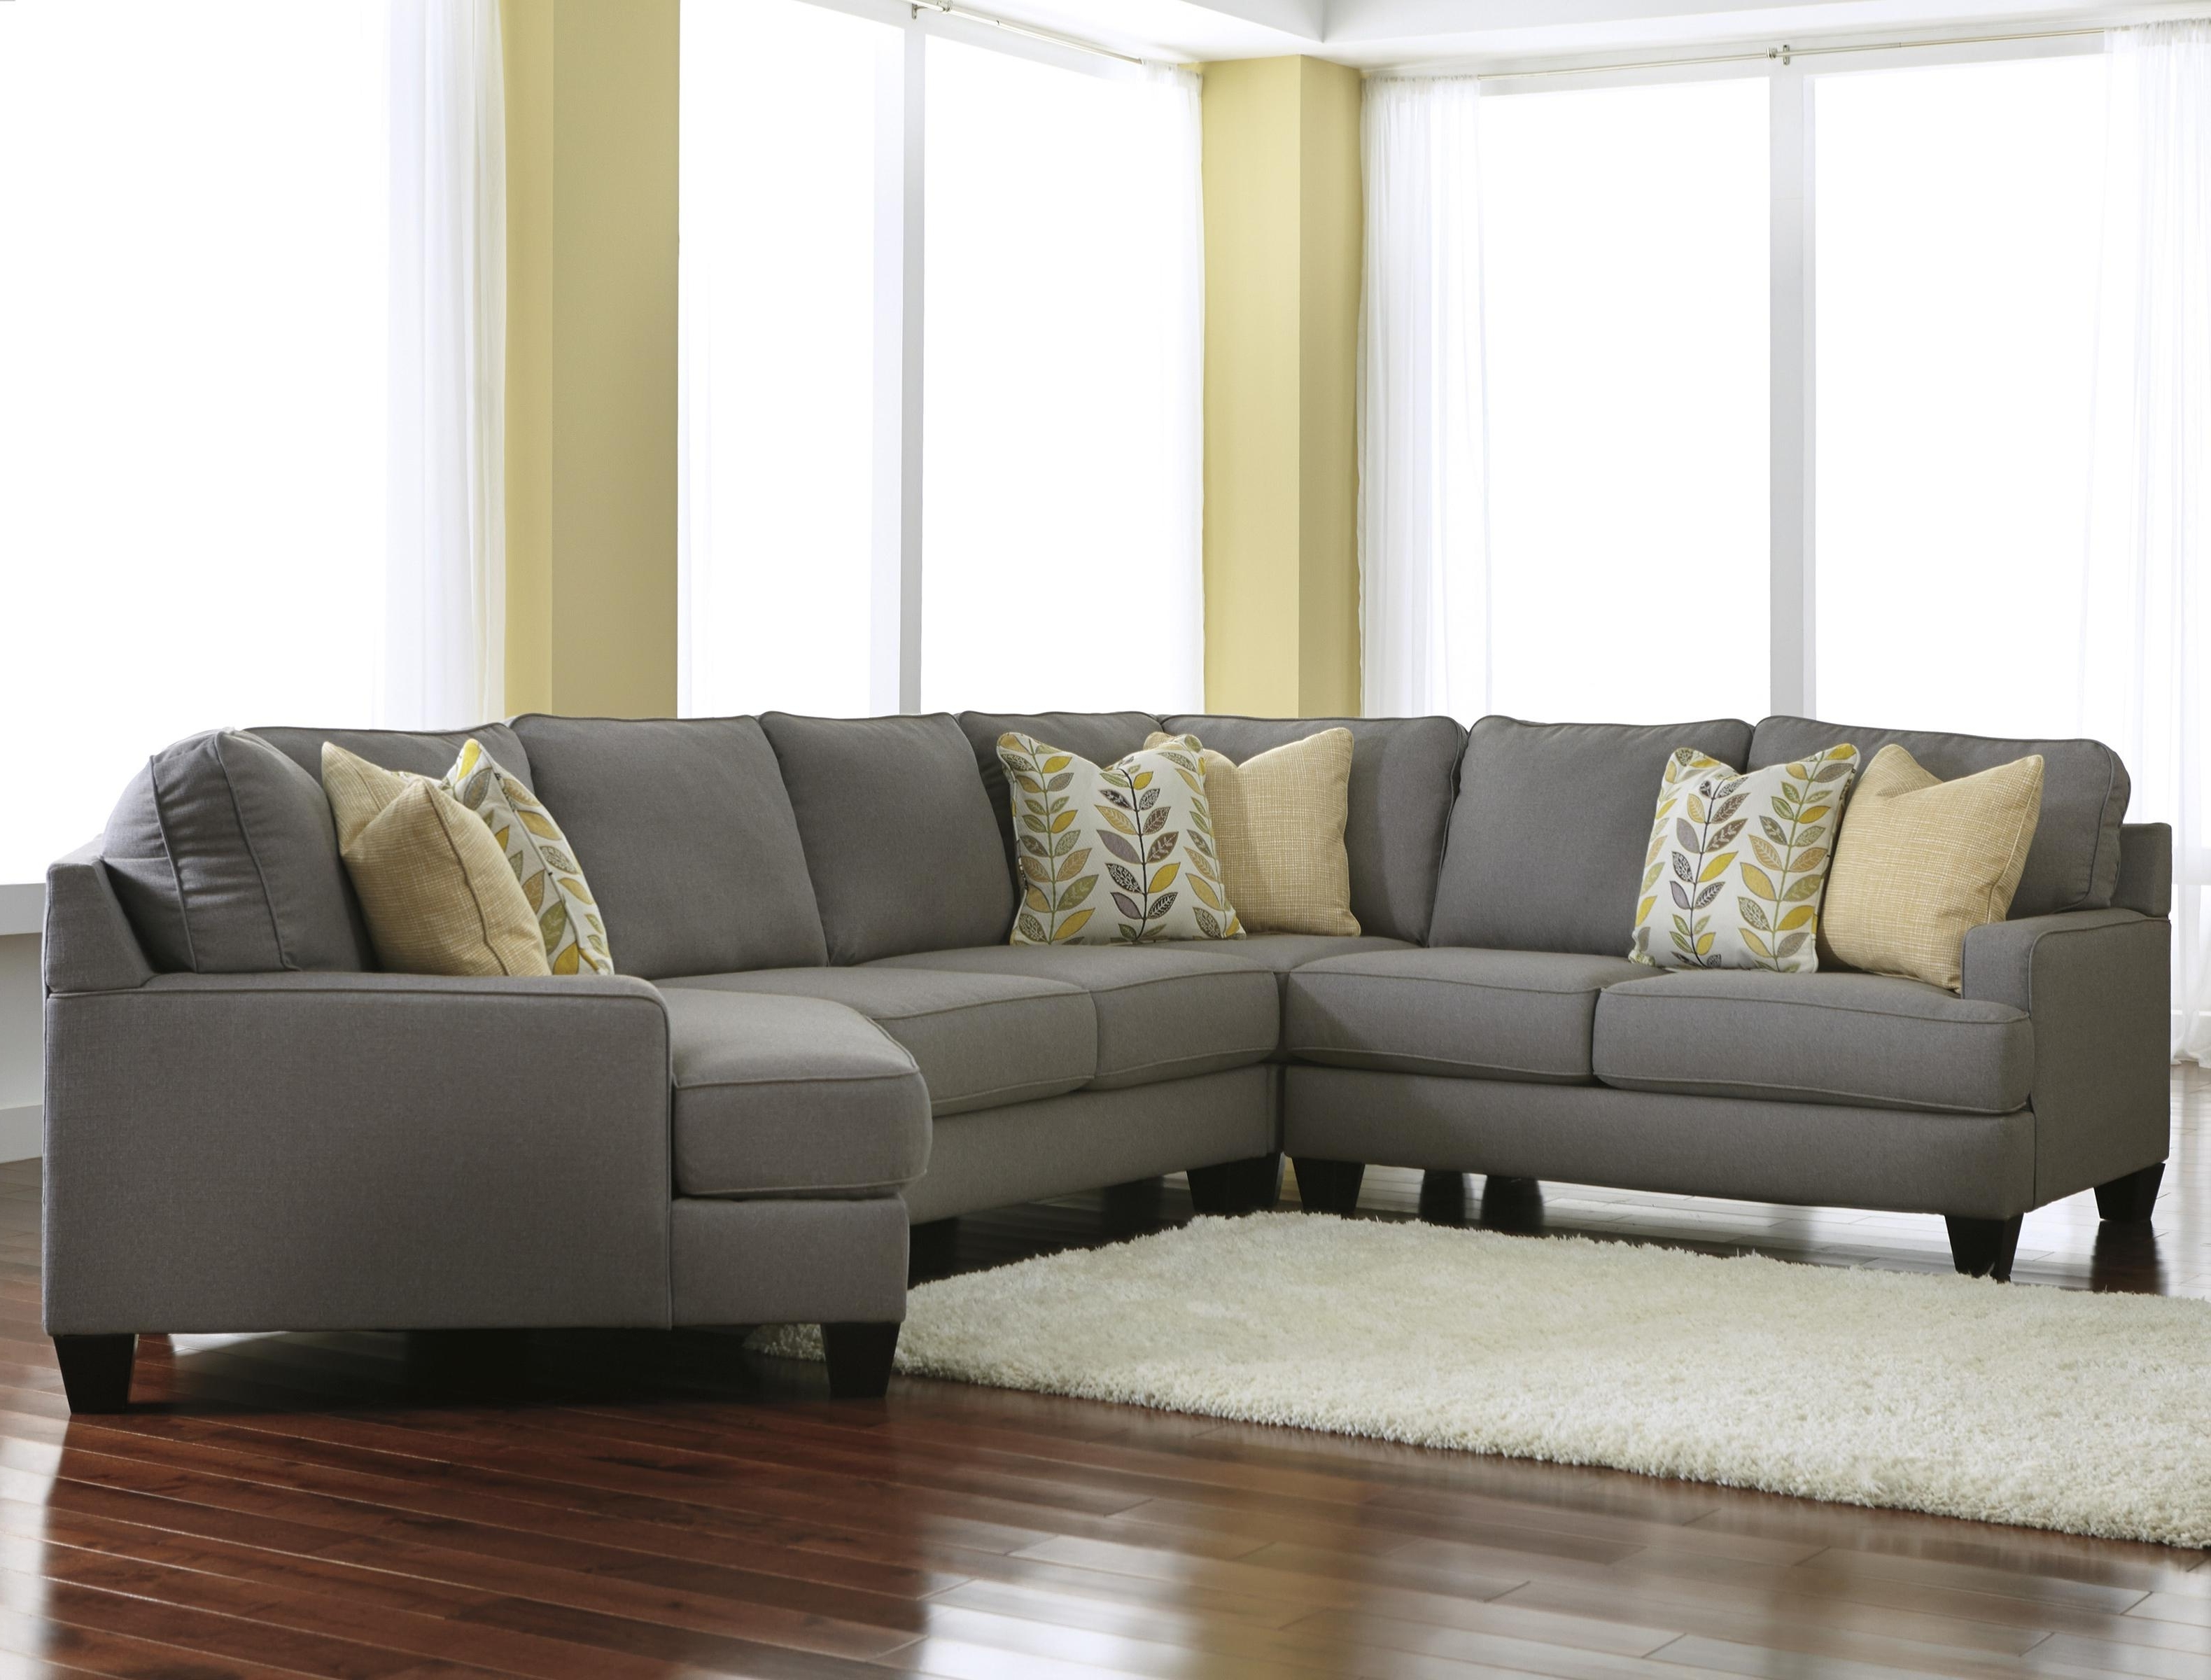 Modern 4 Piece Sectional Sofa With Right Cuddler & Reversible Seat Regarding Popular Lancaster Pa Sectional Sofas (View 9 of 20)